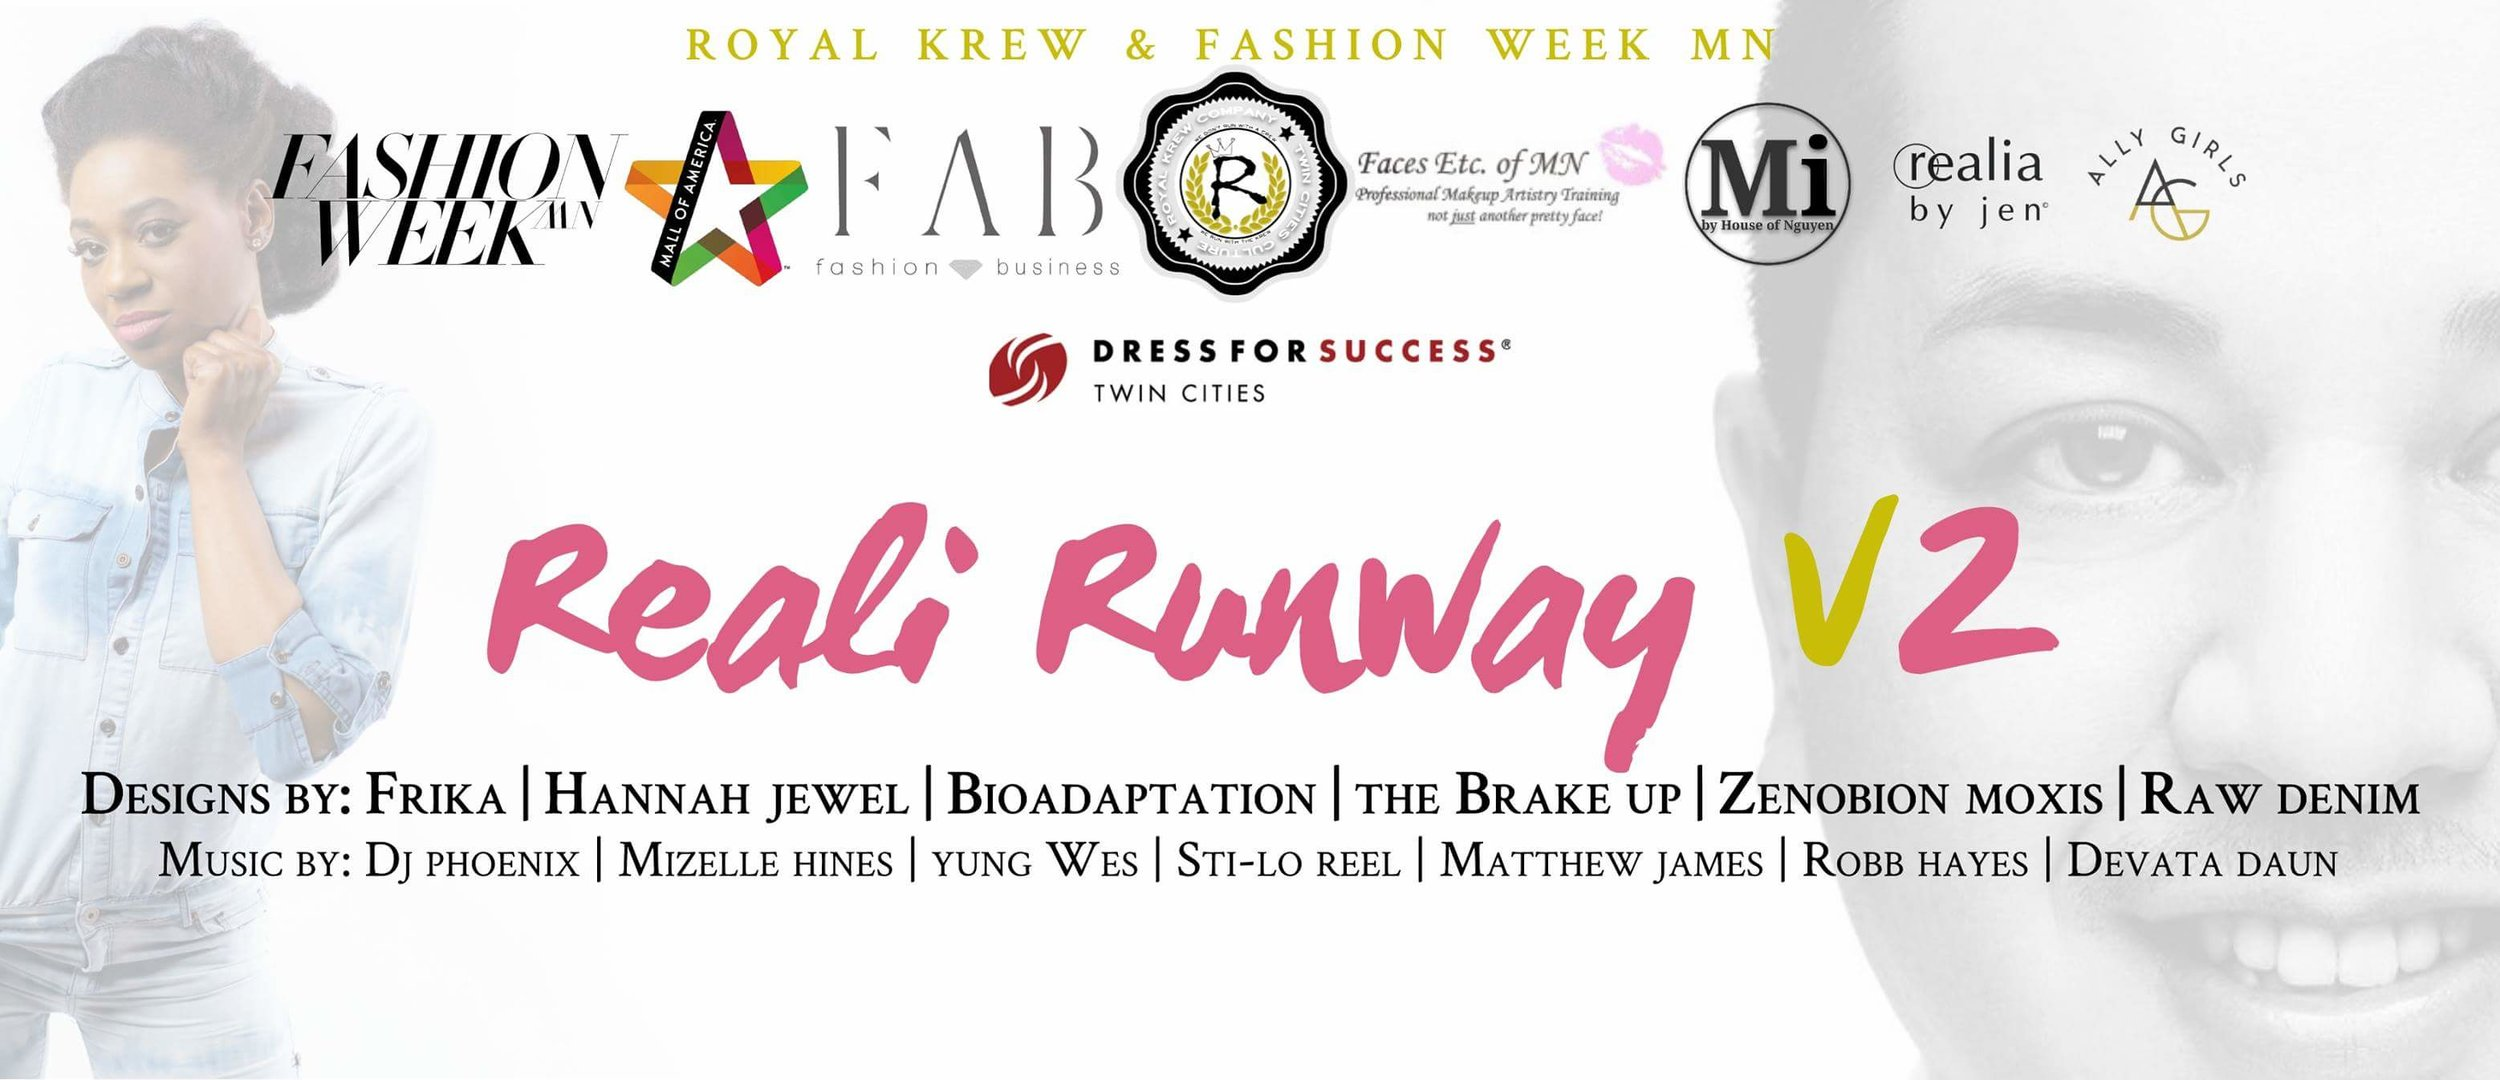 Reali Runway V2 promotional image by  Royal Krew Co .